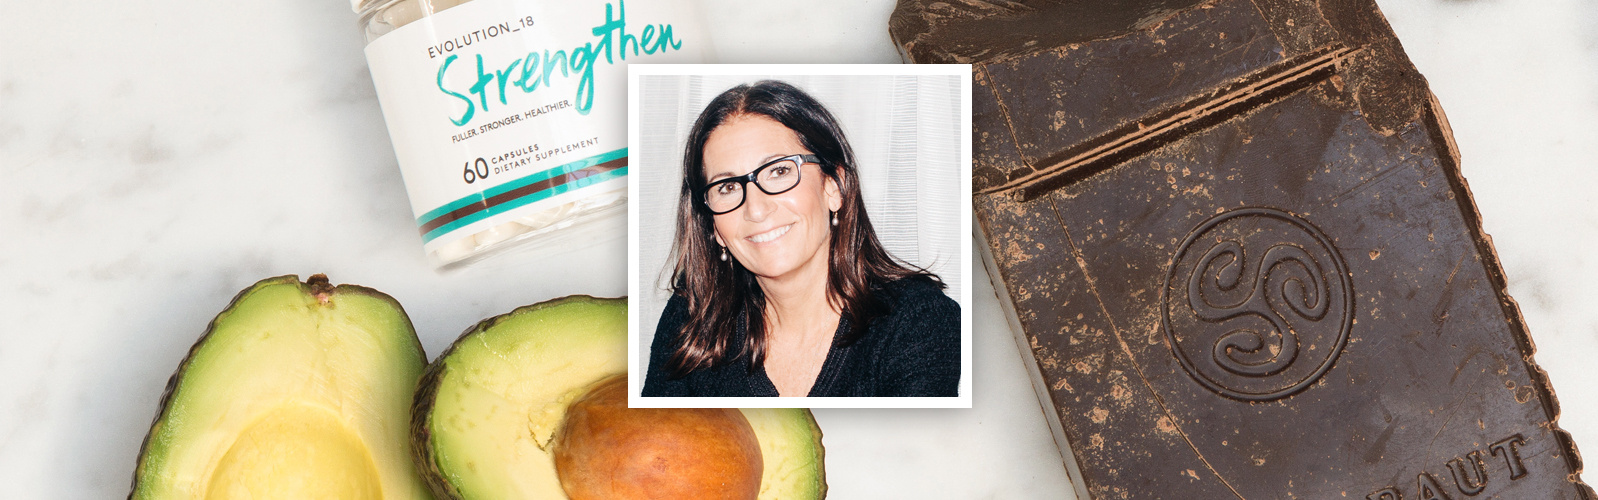 EVOLUTION_18 — Browse the new line of supplements by Bobbi Brown